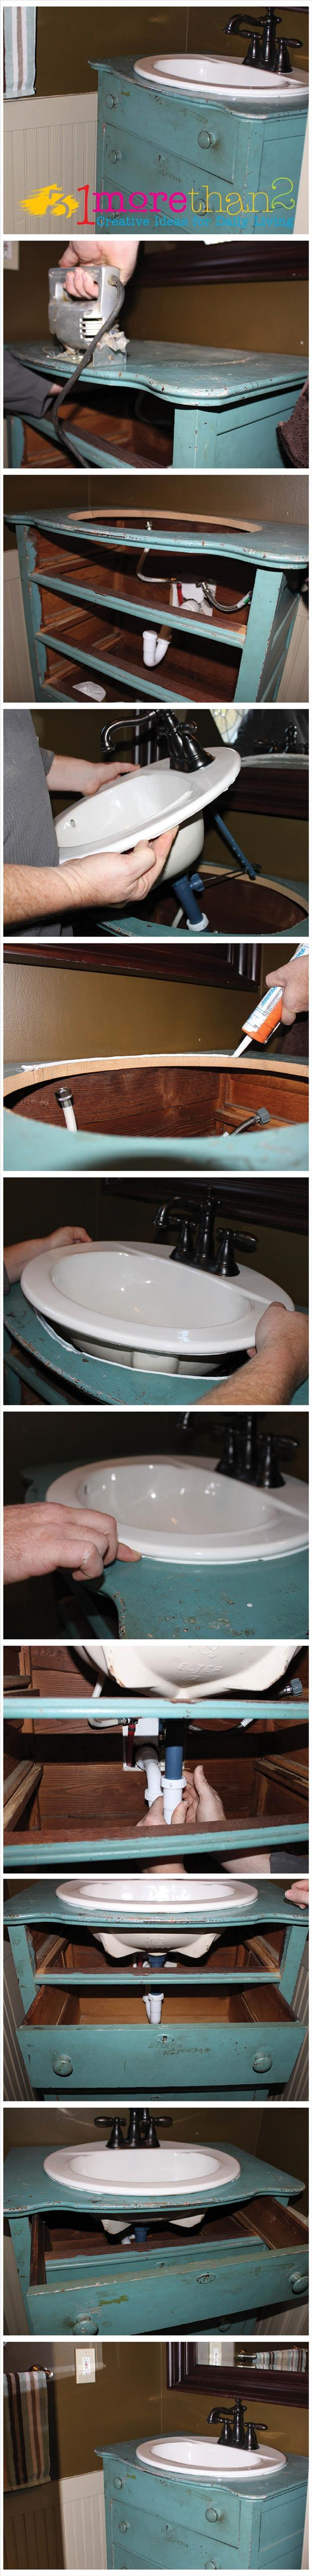 make a bathroom sink out of a dresser fun home ideas